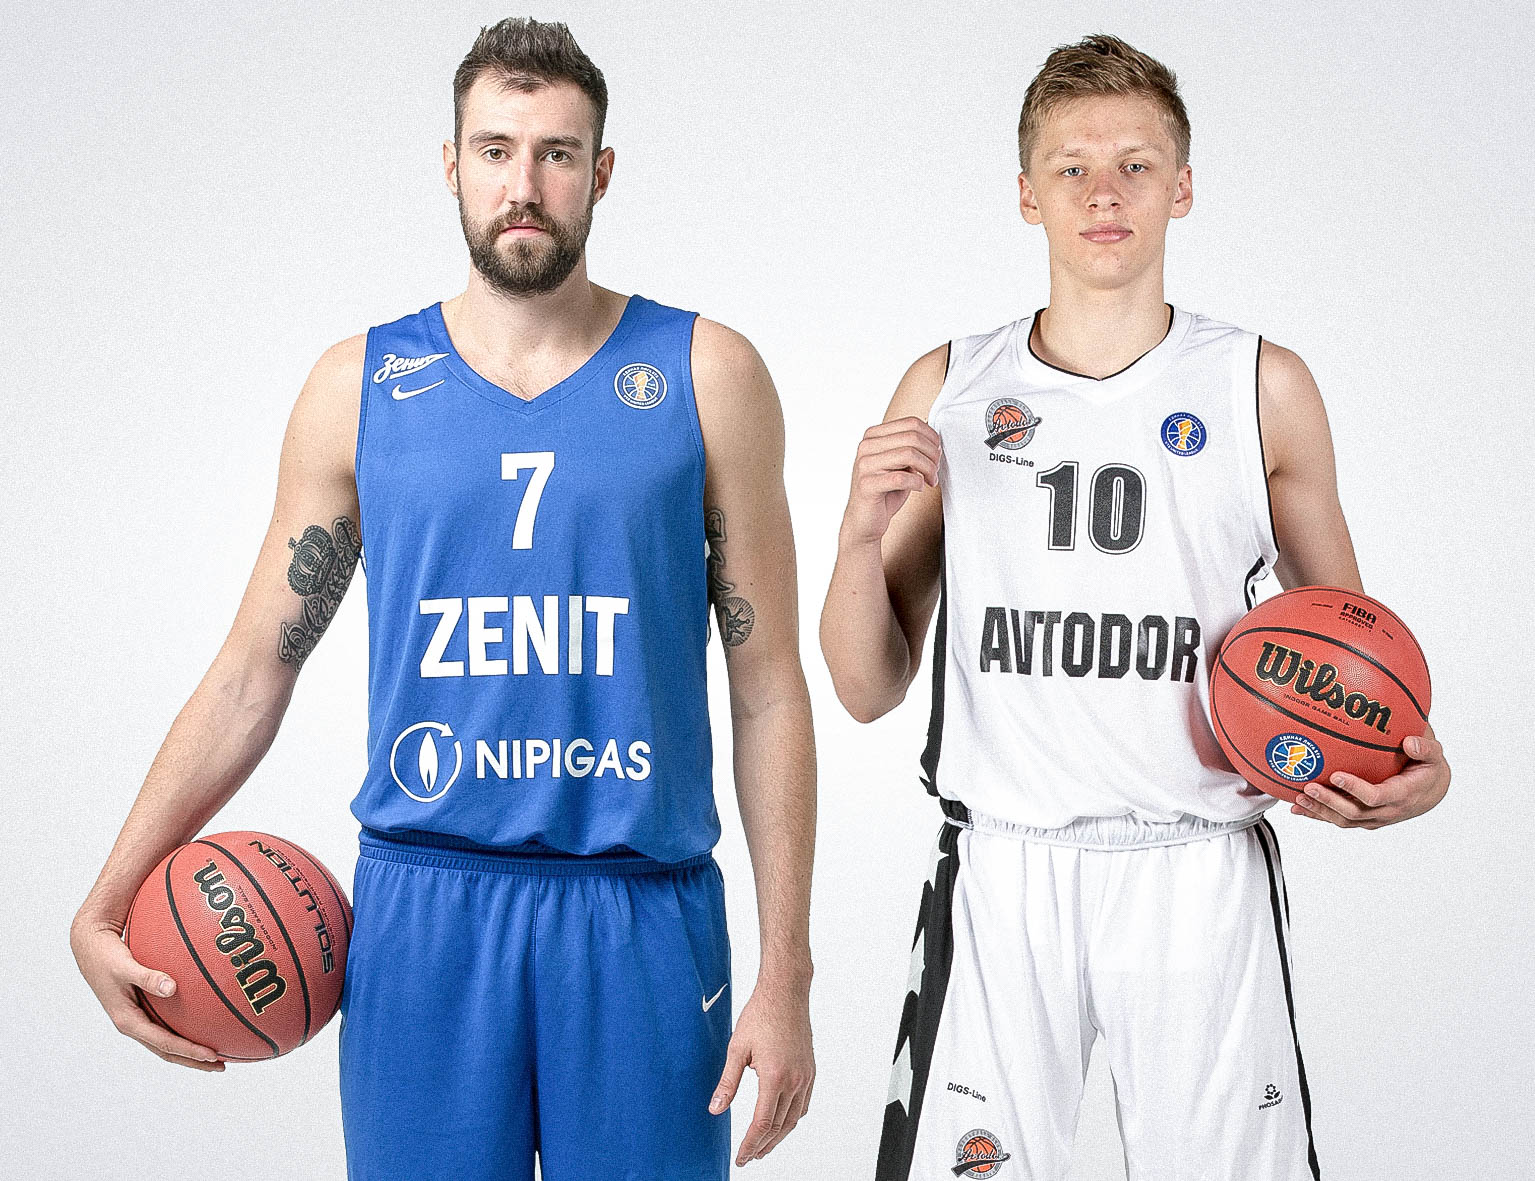 Game Of The Week: Zenit vs. Avtodor